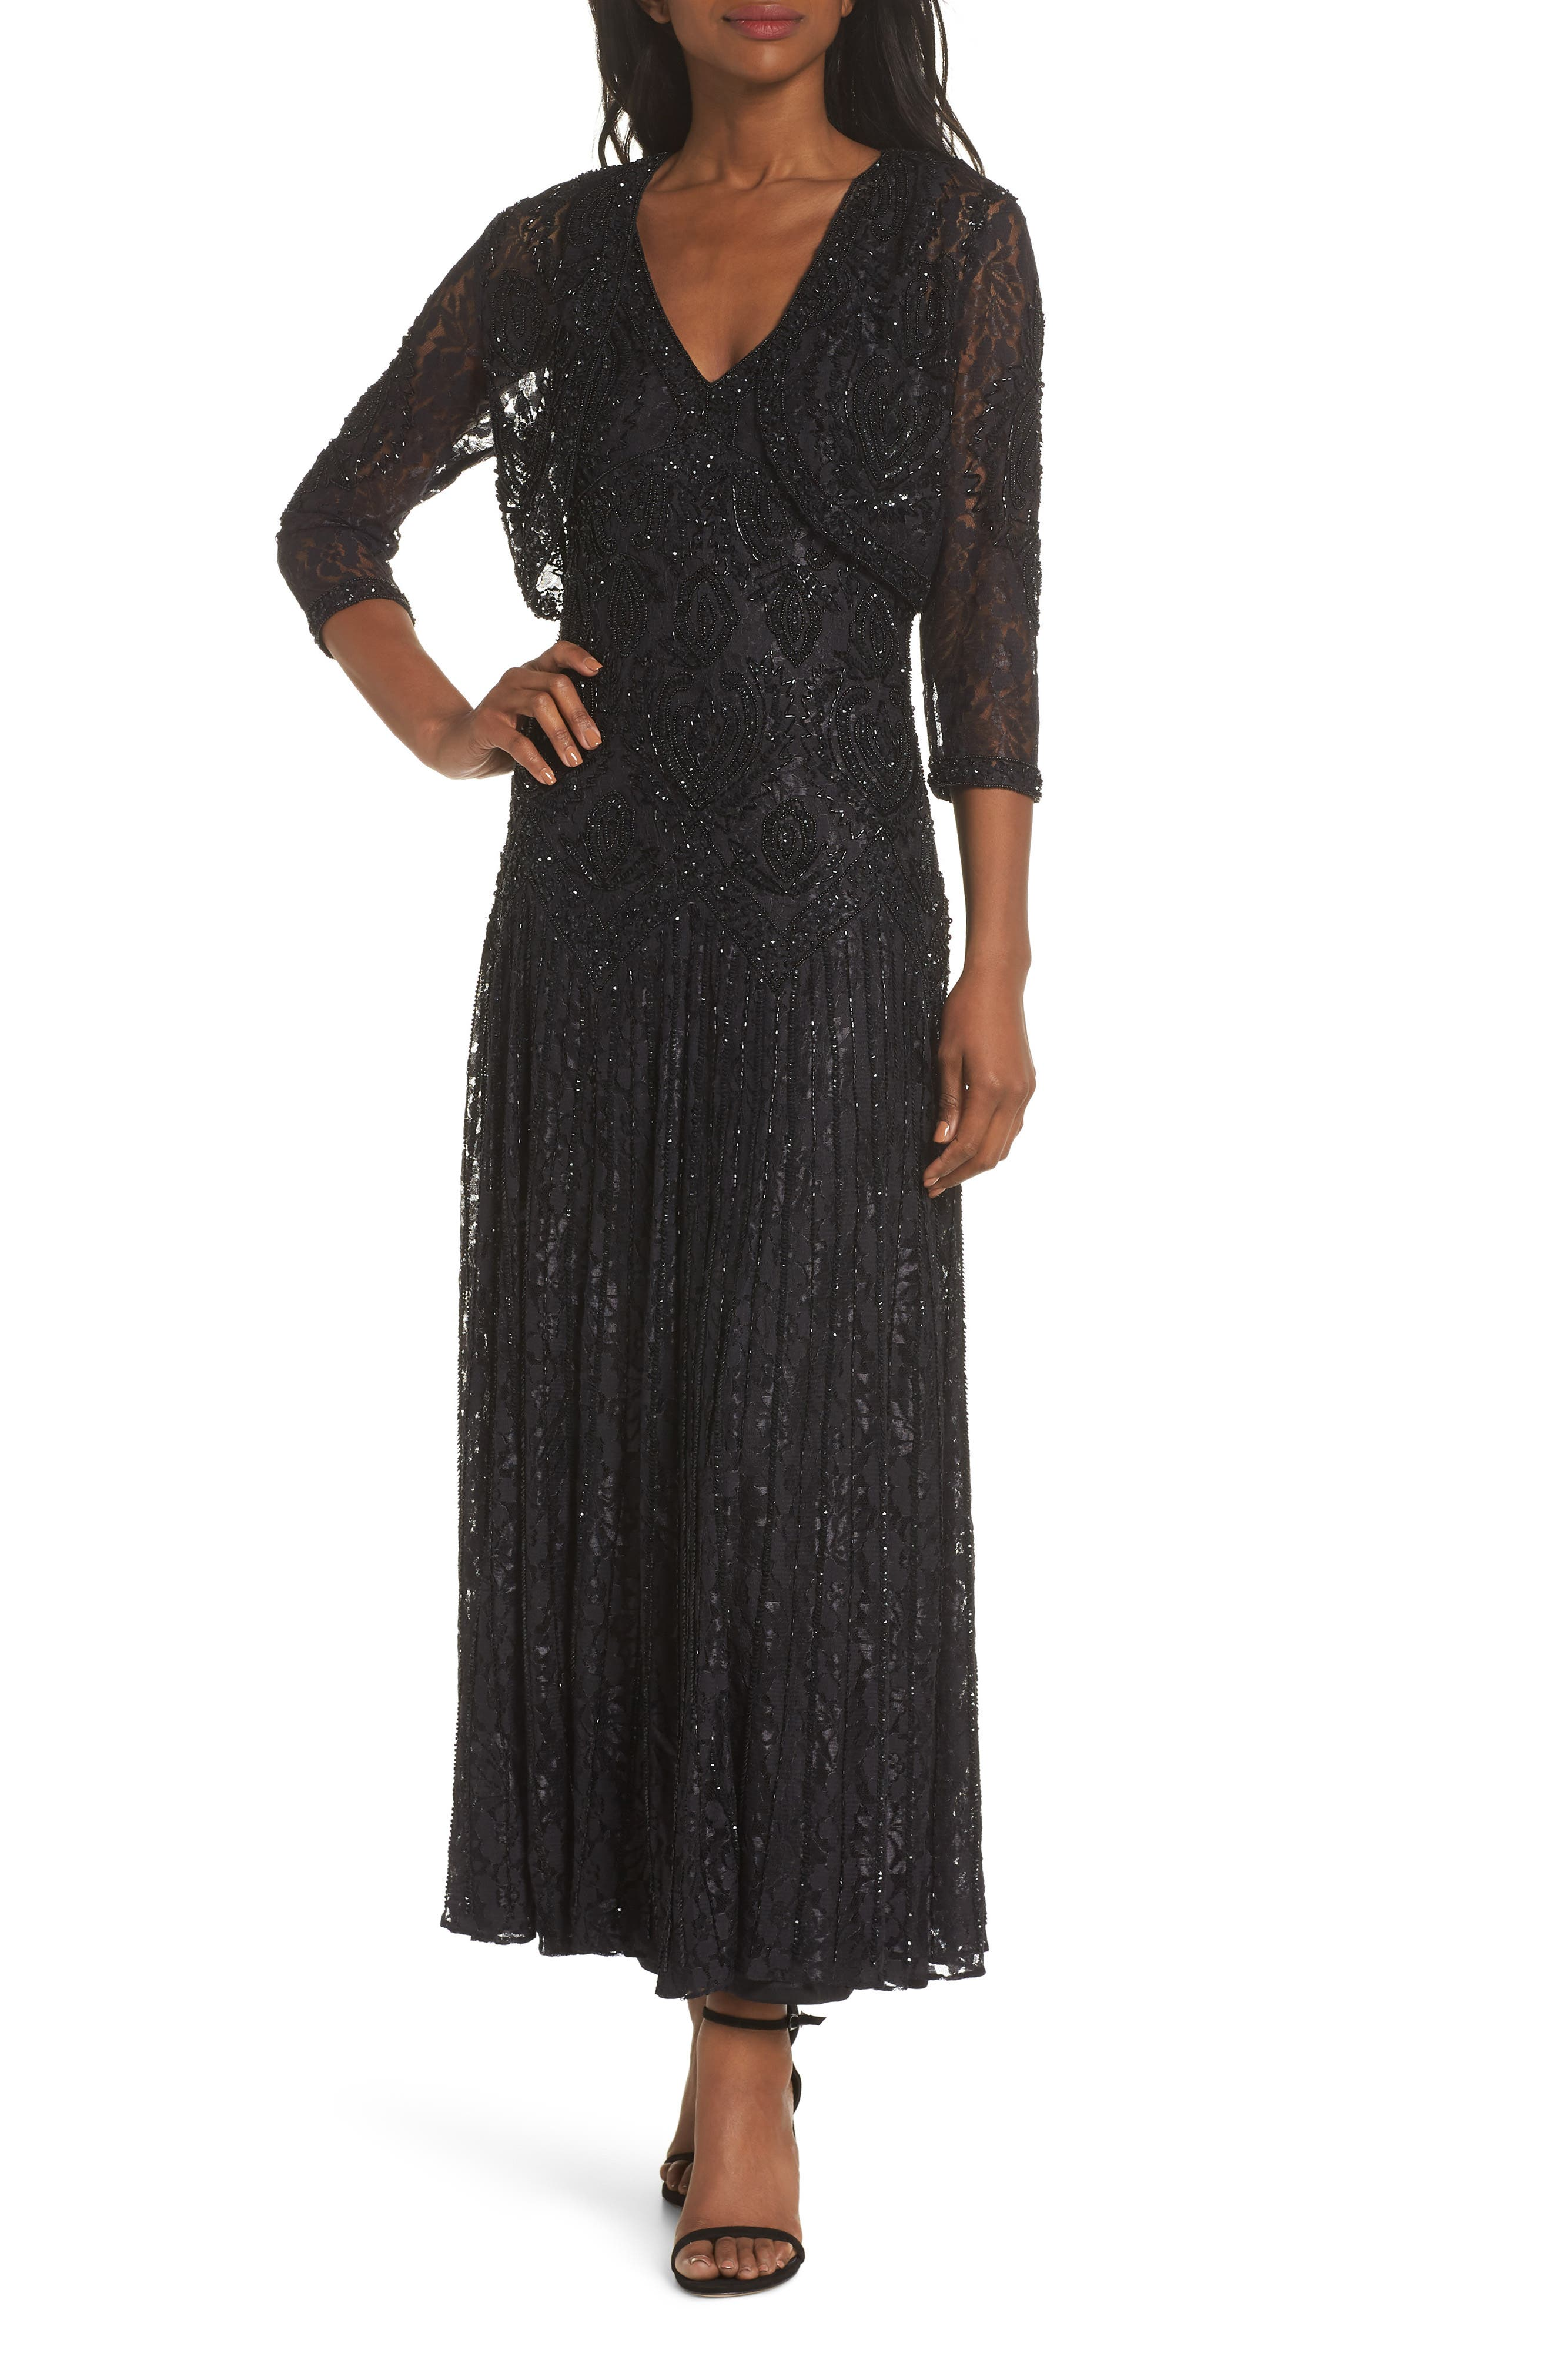 1930s Dresses | 30s Art Deco Dress Womens Pisarro Nights Beaded Lace Evening Dress With Bolero Size 12 - Black $238.00 AT vintagedancer.com